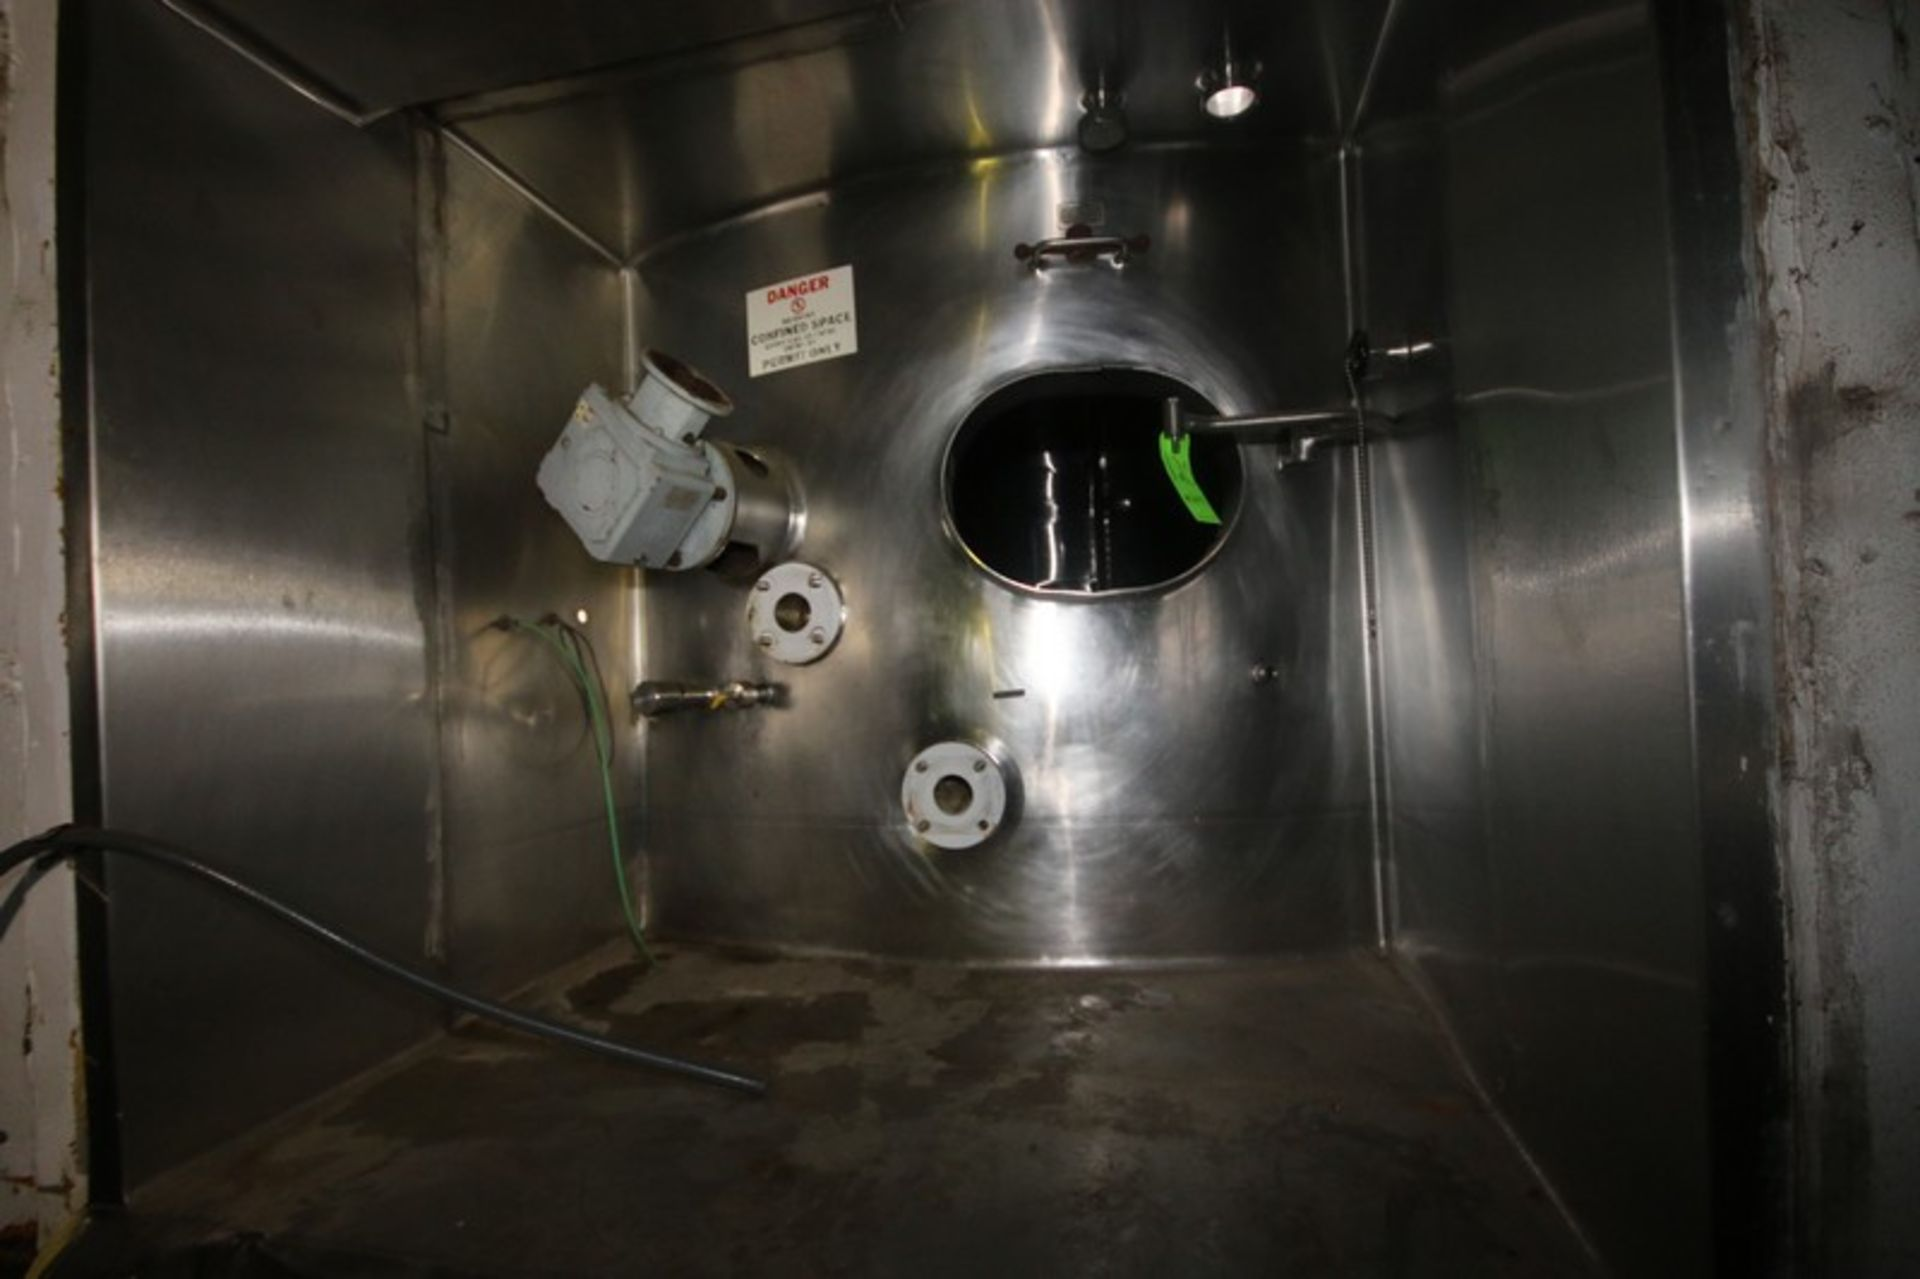 Aprox. 20,000 Gal. S/S Silo, Silo Dims.: Aprox. 11' Dia. x 30' Tall, with Inverted Dish Bottom, - Image 5 of 14